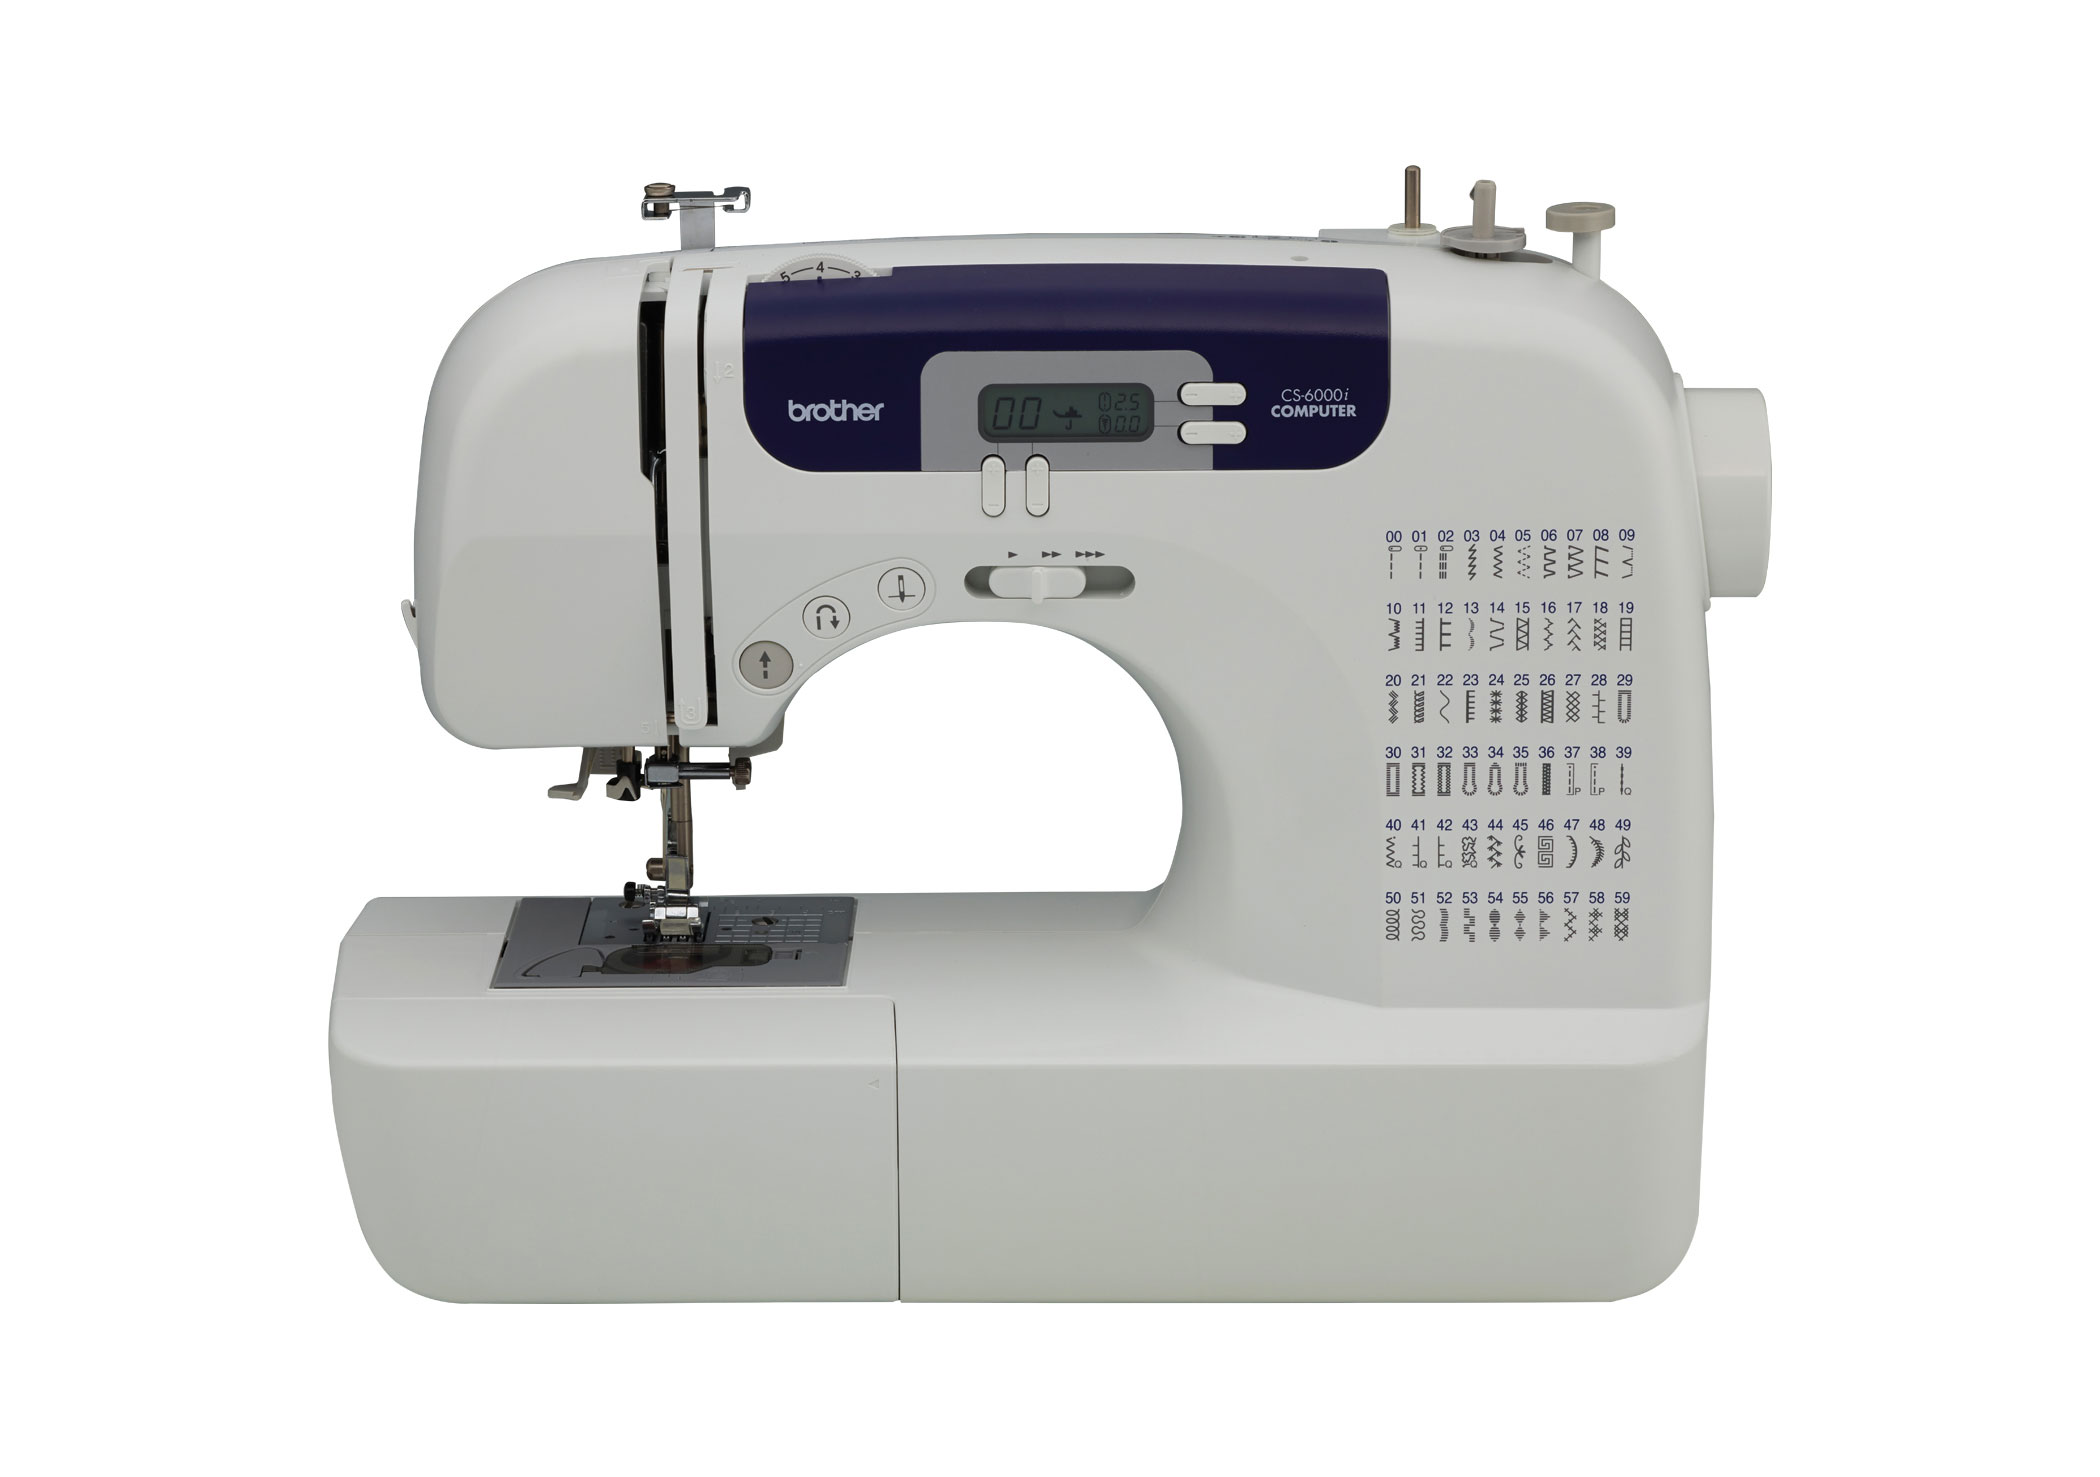 Brother Cs6000i Feature Rich Sewing Machine With 60 Built In